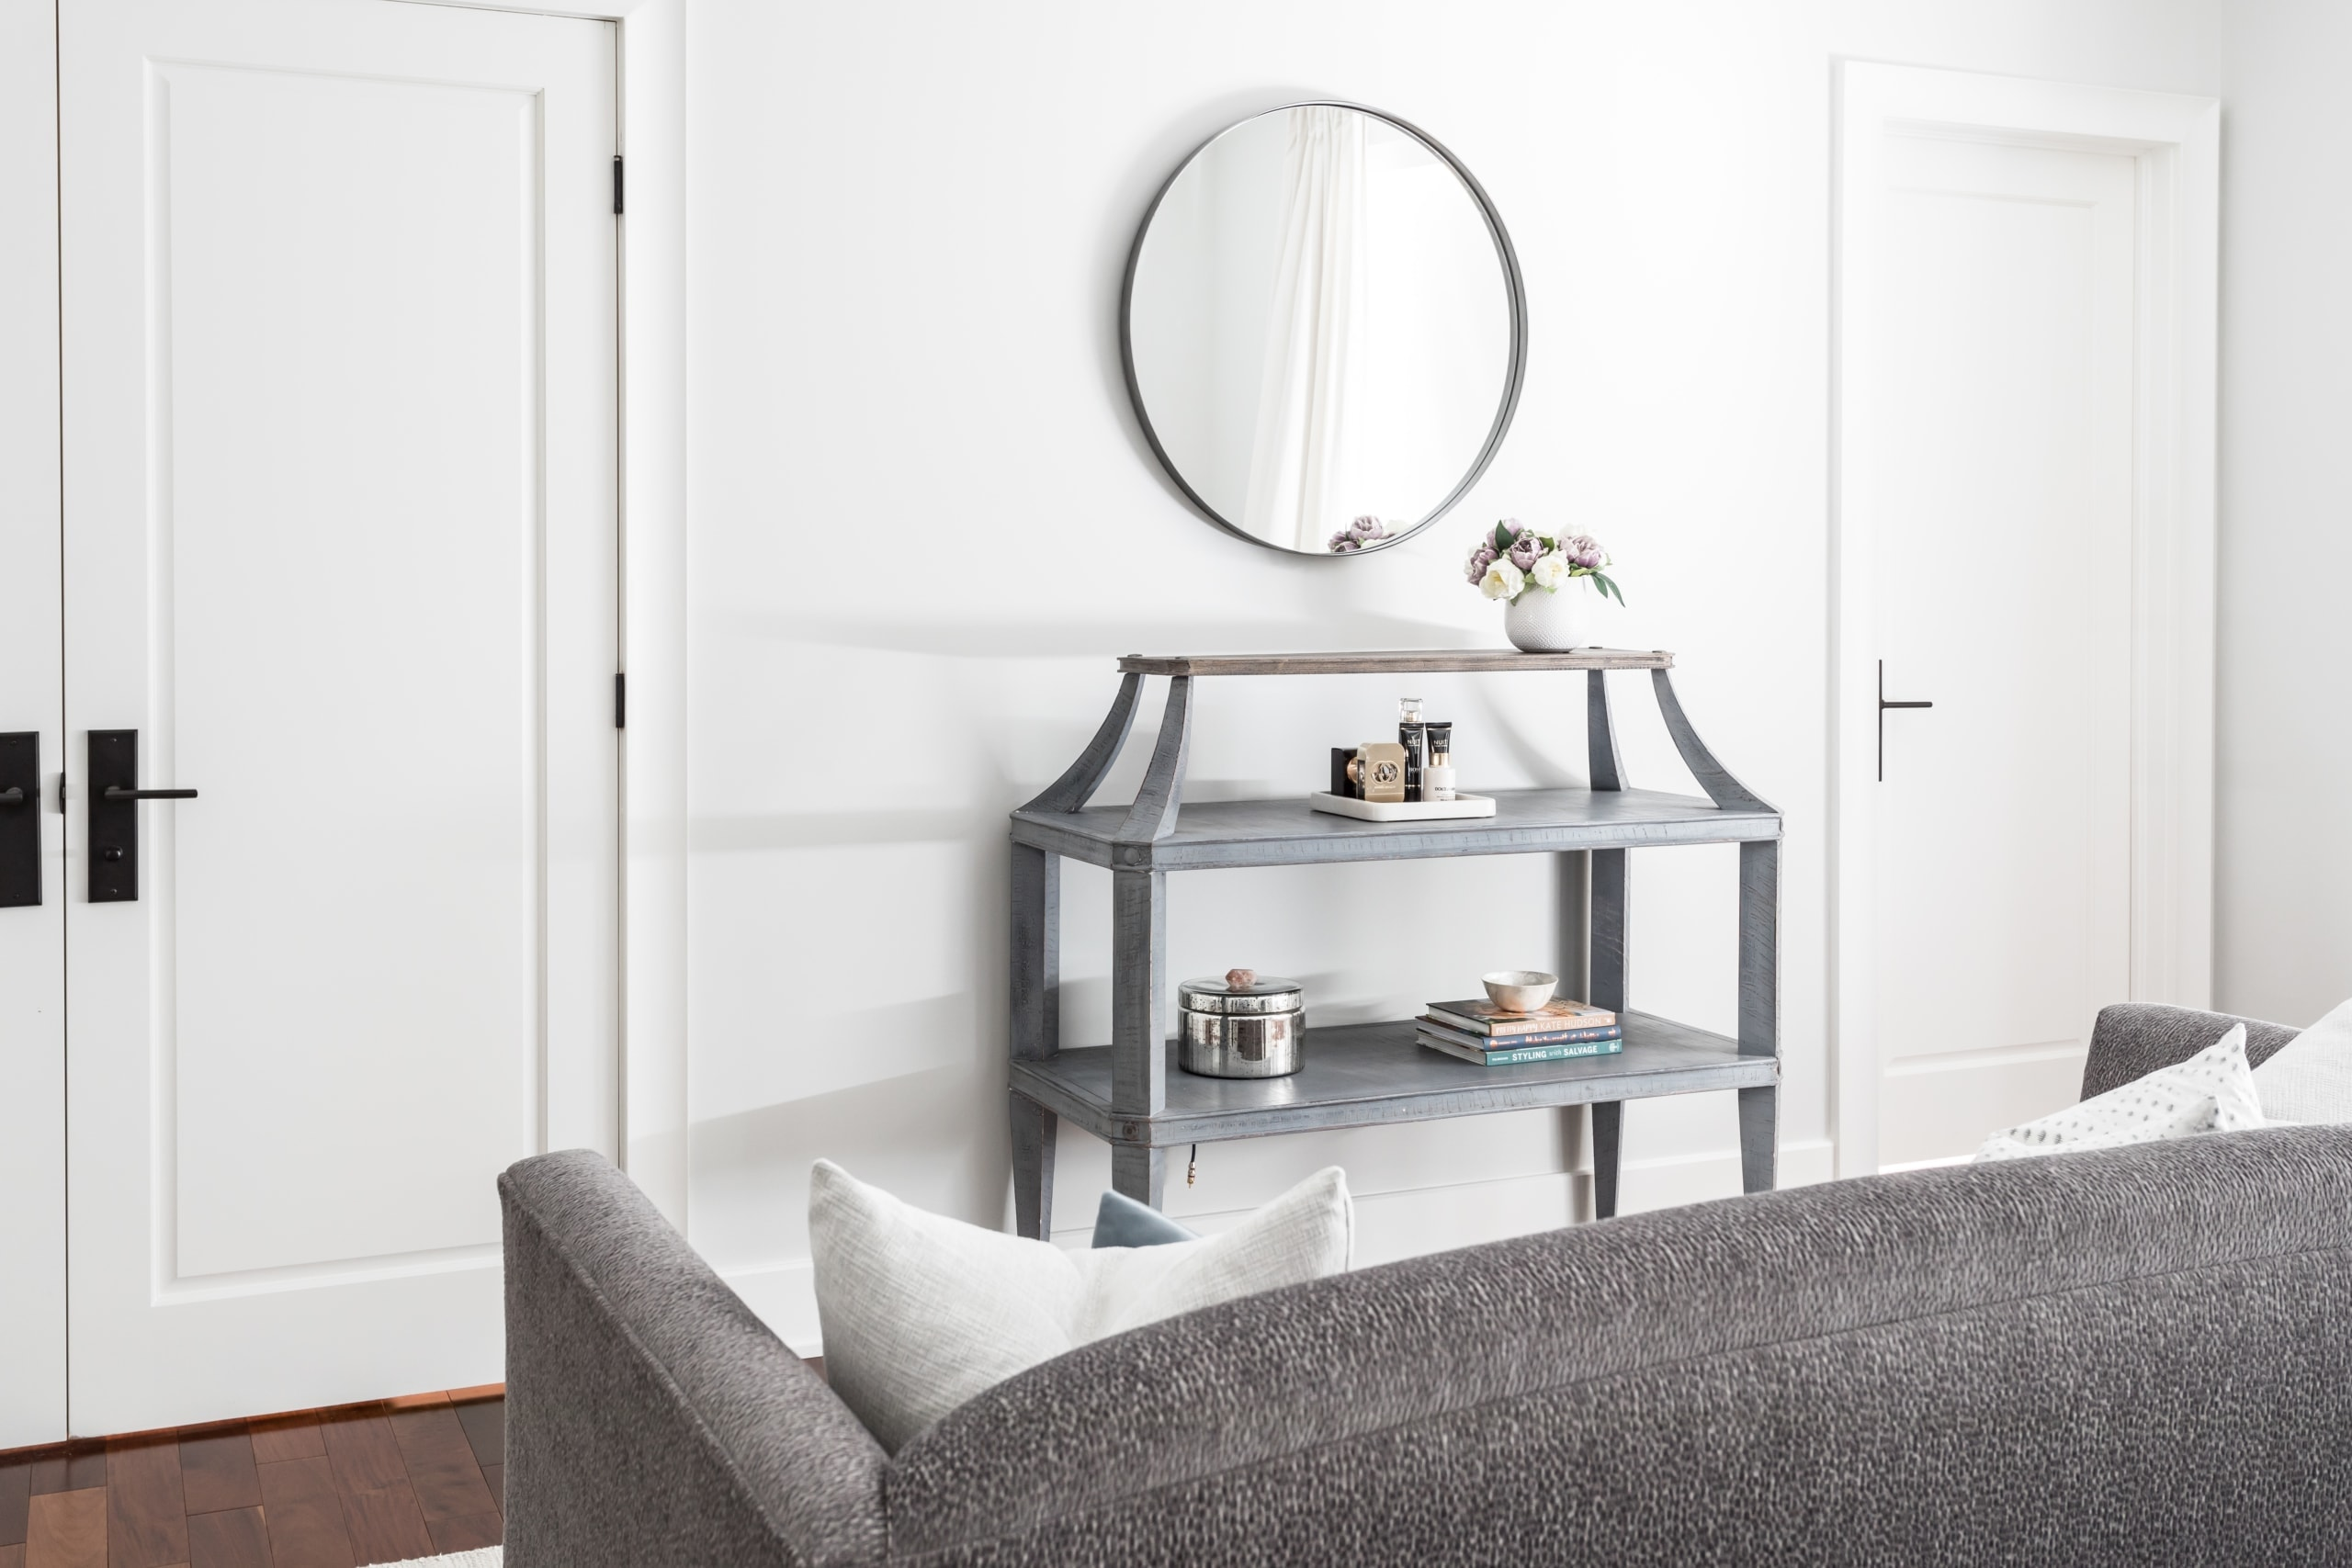 Small couch facing a shelving unit with an assortment of decorations on it